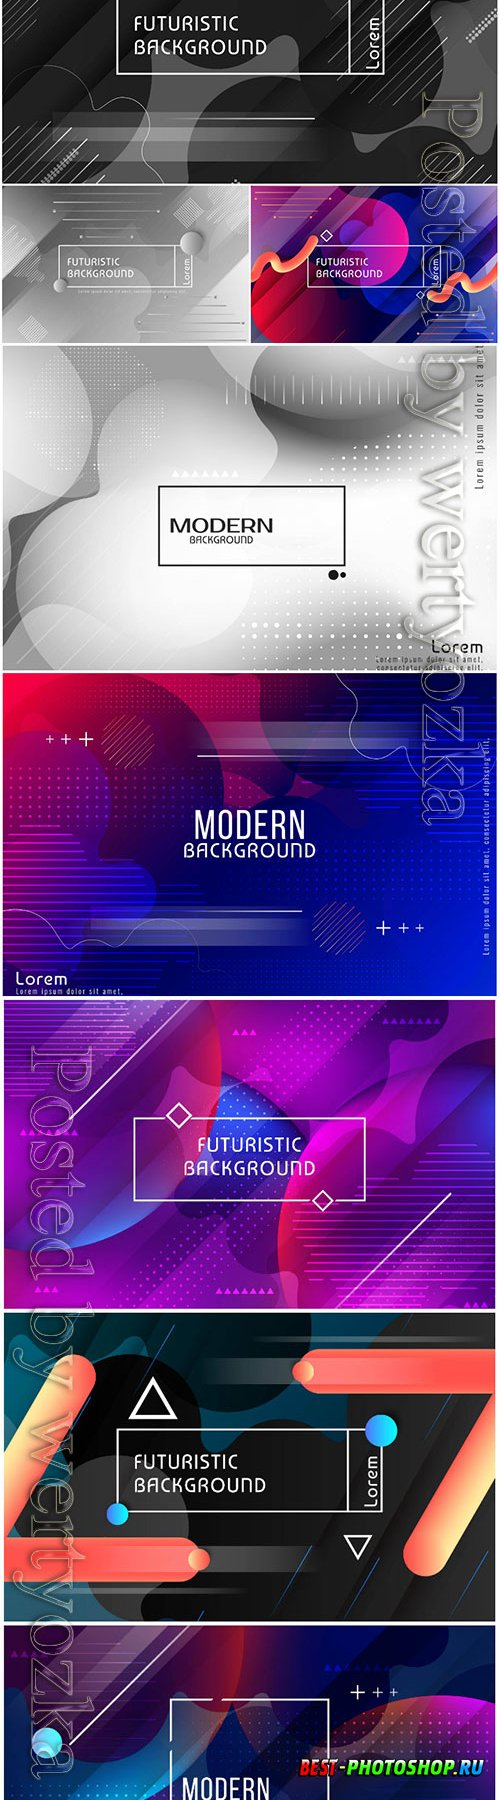 Futuristic vector abstract background